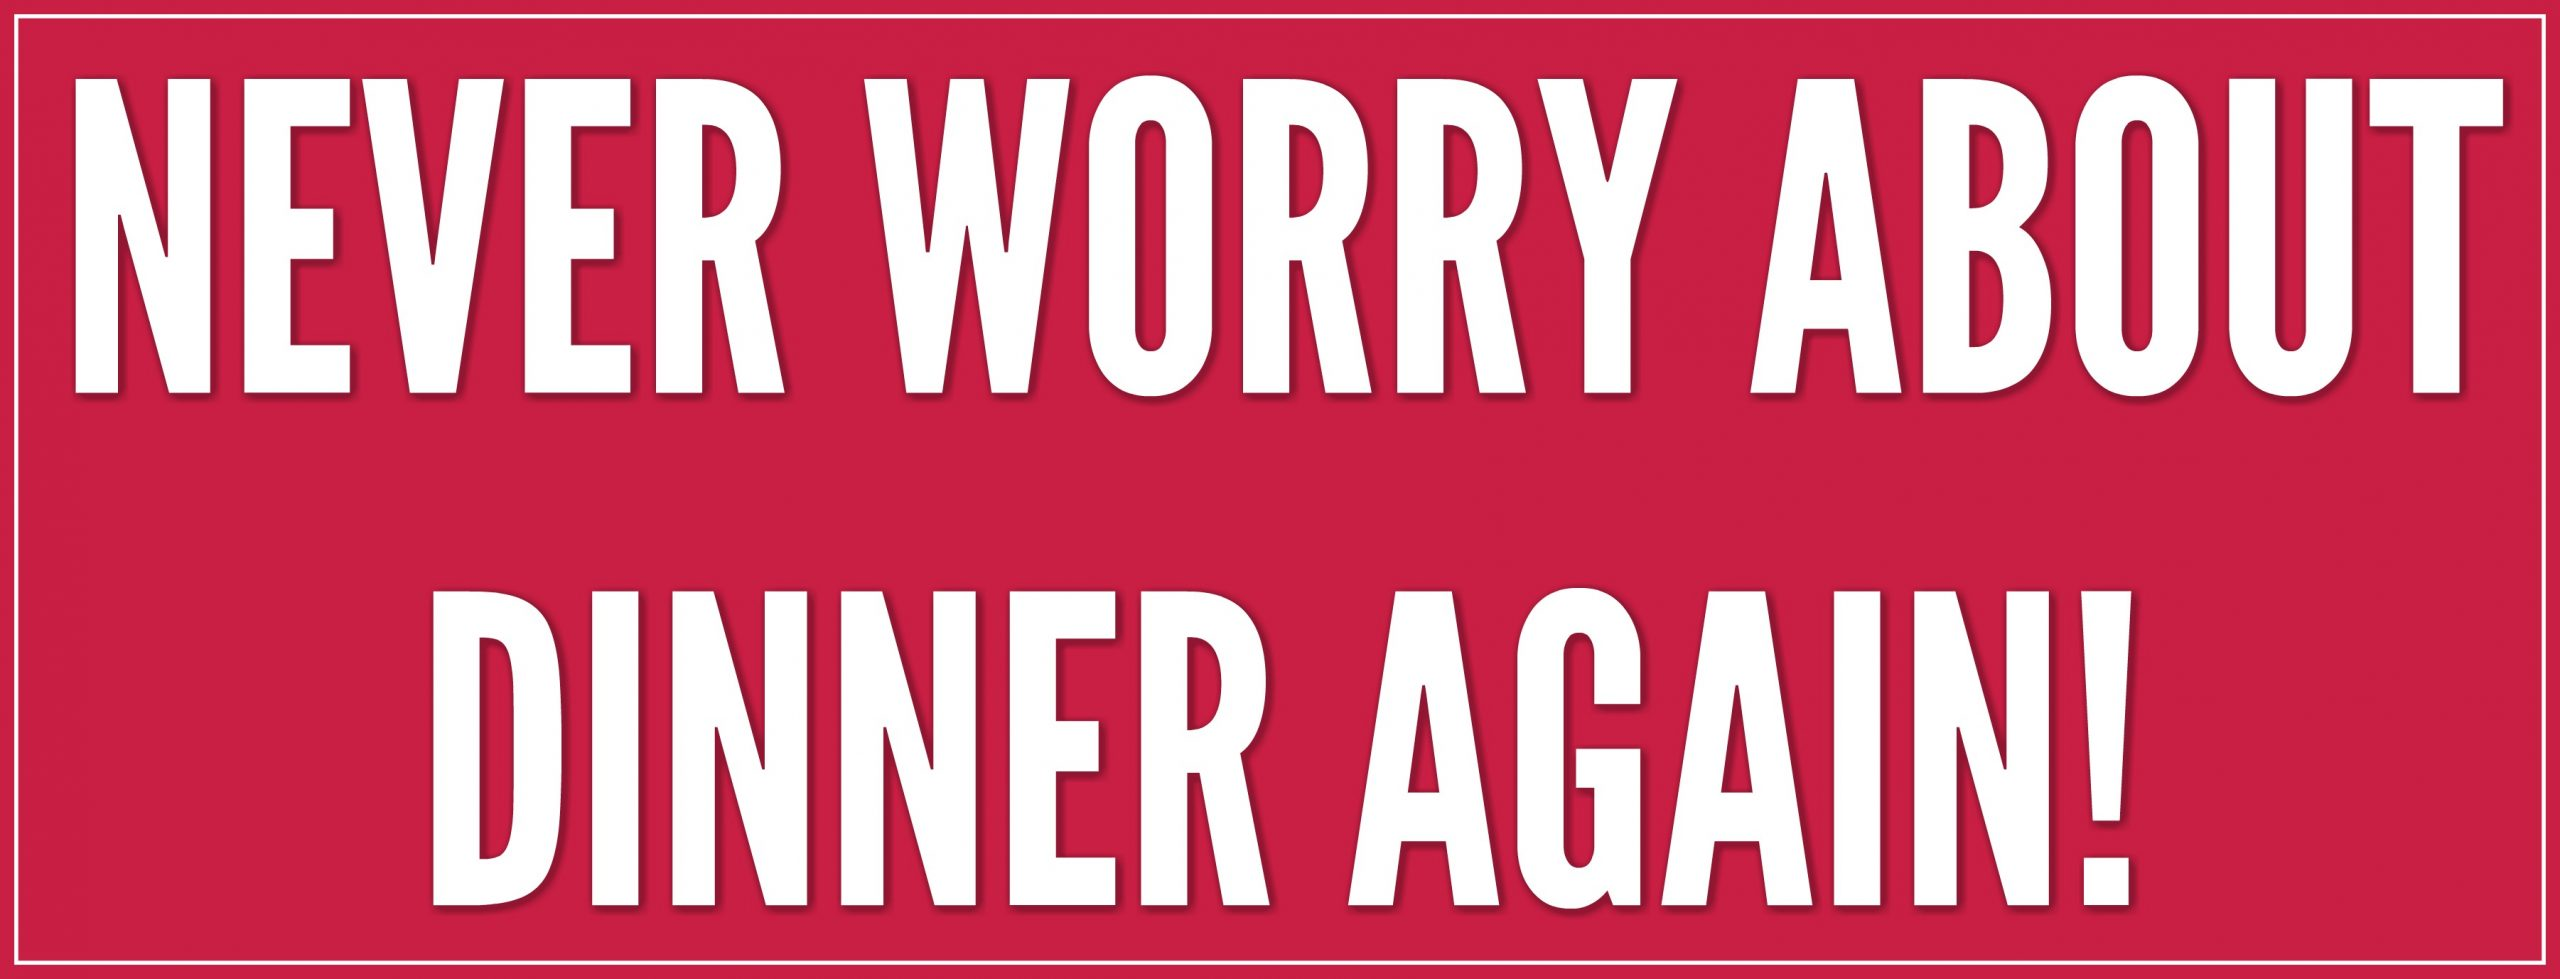 NEVER WORRY ABOUT DINNER